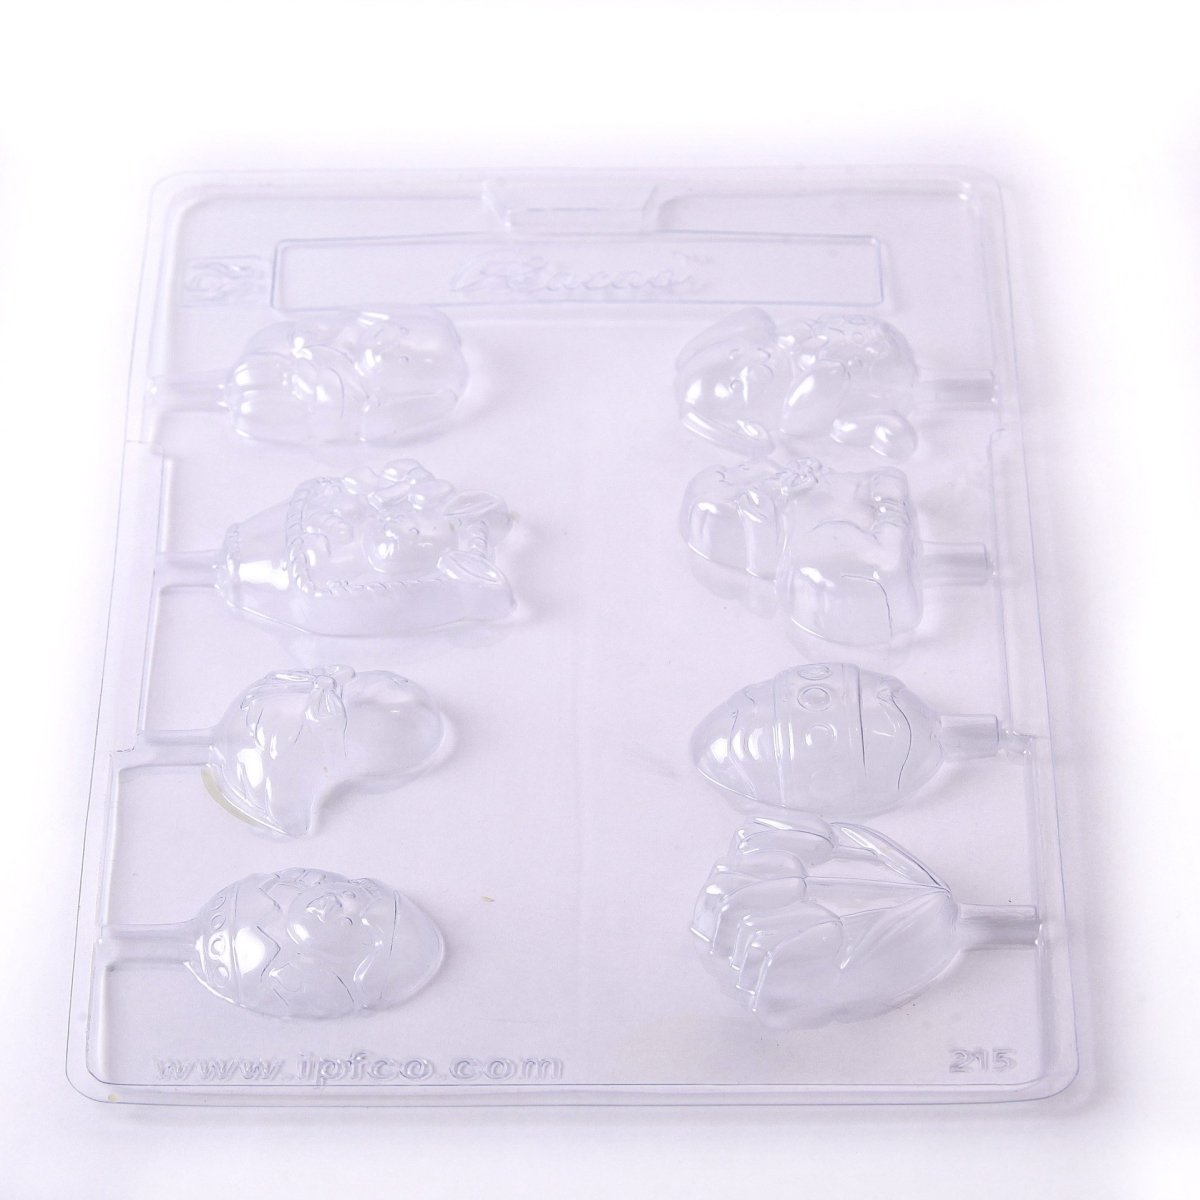 Easter Lollies Chocolate/Sweet/Soap/Plaster/Bath Bomb Mould #215 (8 cavity) - Mystic Moments UK